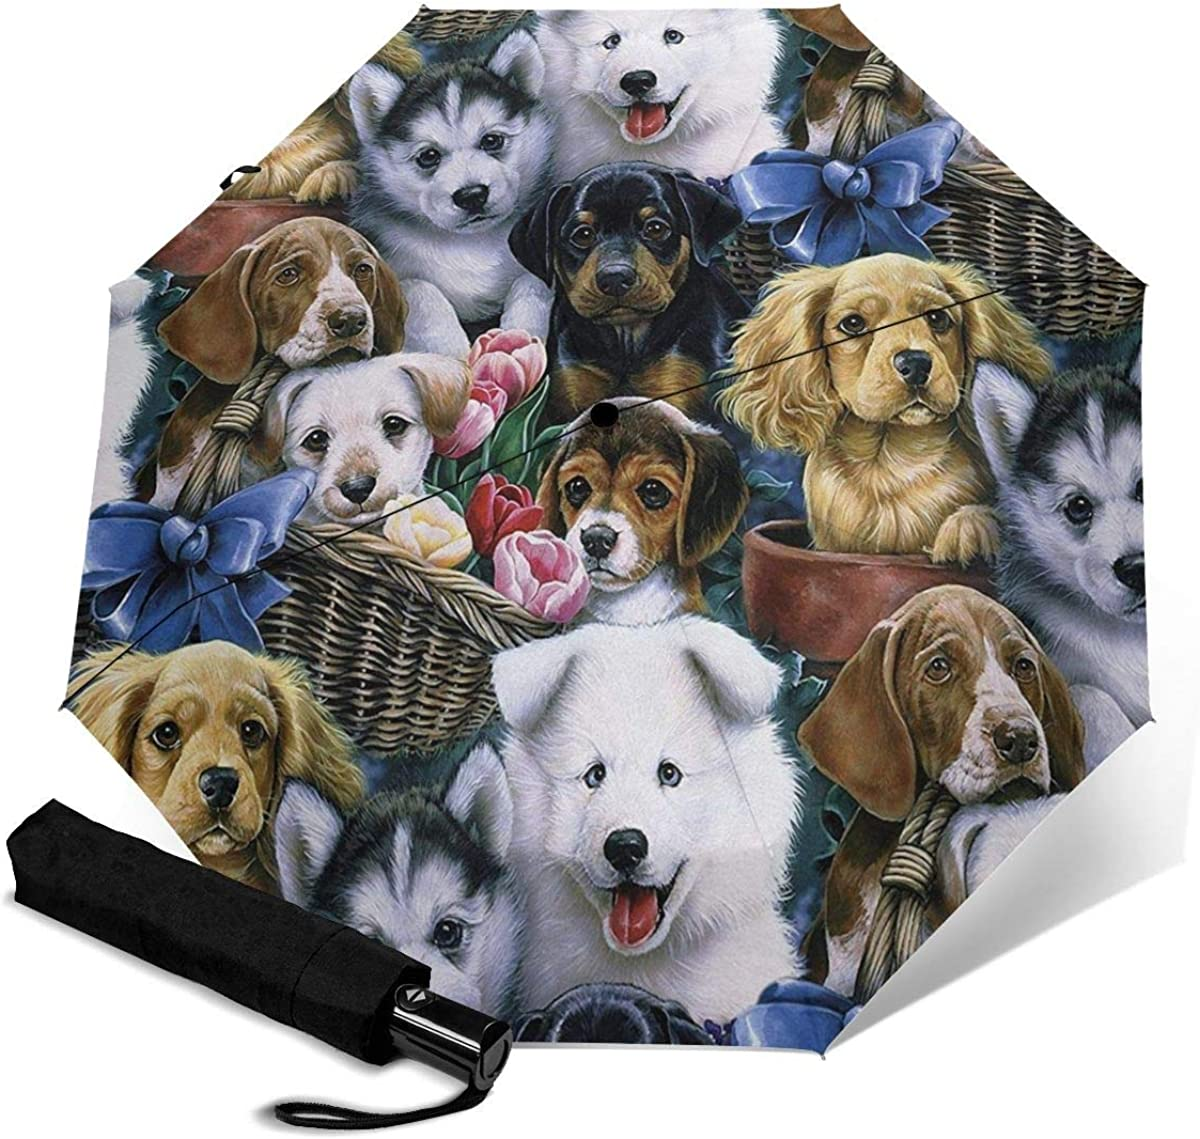 Puppies Puppy Dog Faces quality assurance Umbrellas for Sale price Auto rain Color-Changing U